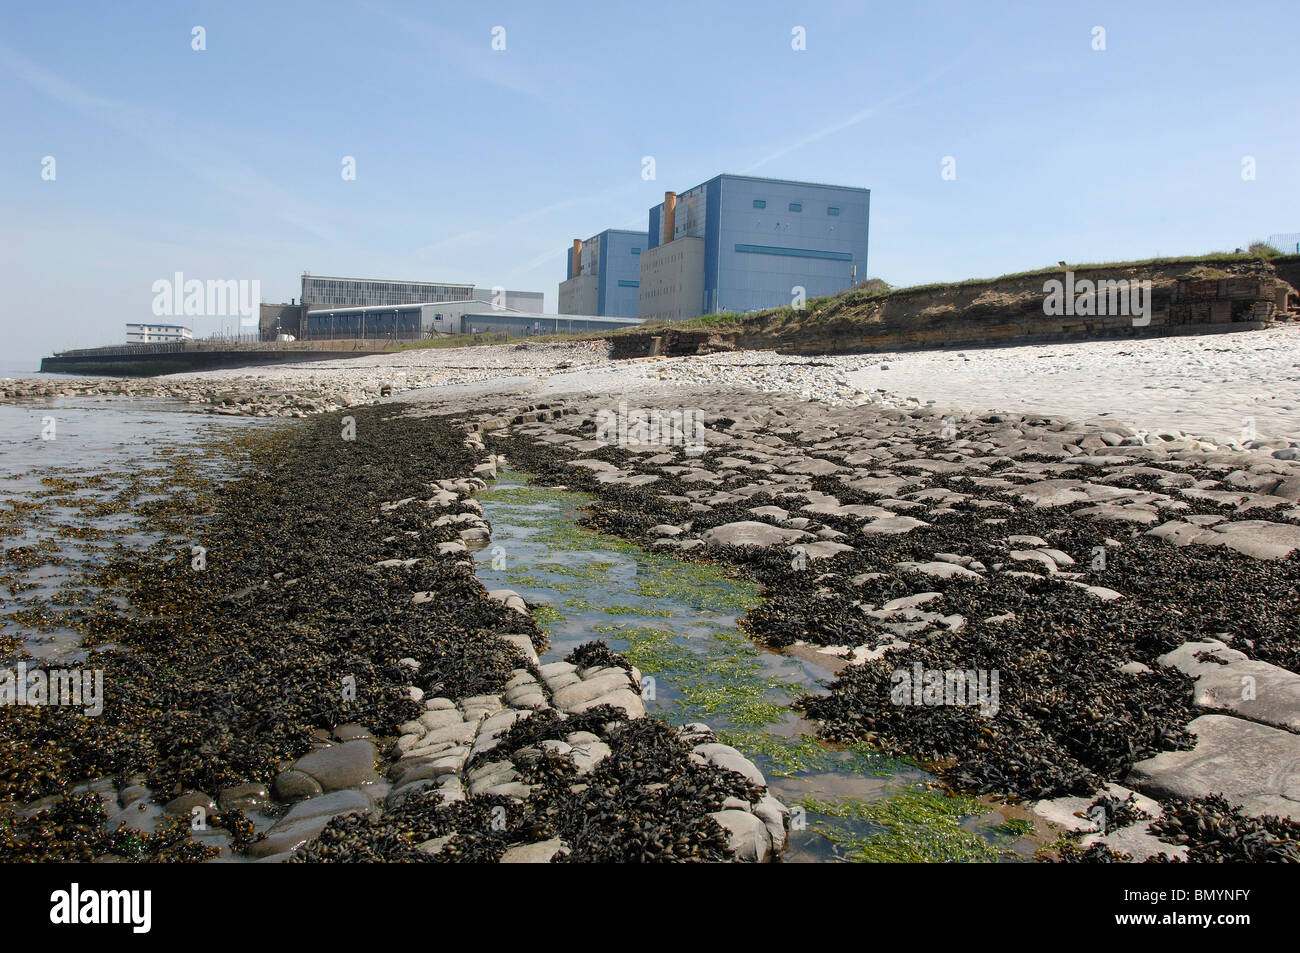 Beach where Proposed Hinkley C Nuclear Power station would be built with Existing Nuclear Stations behind - Stock Image